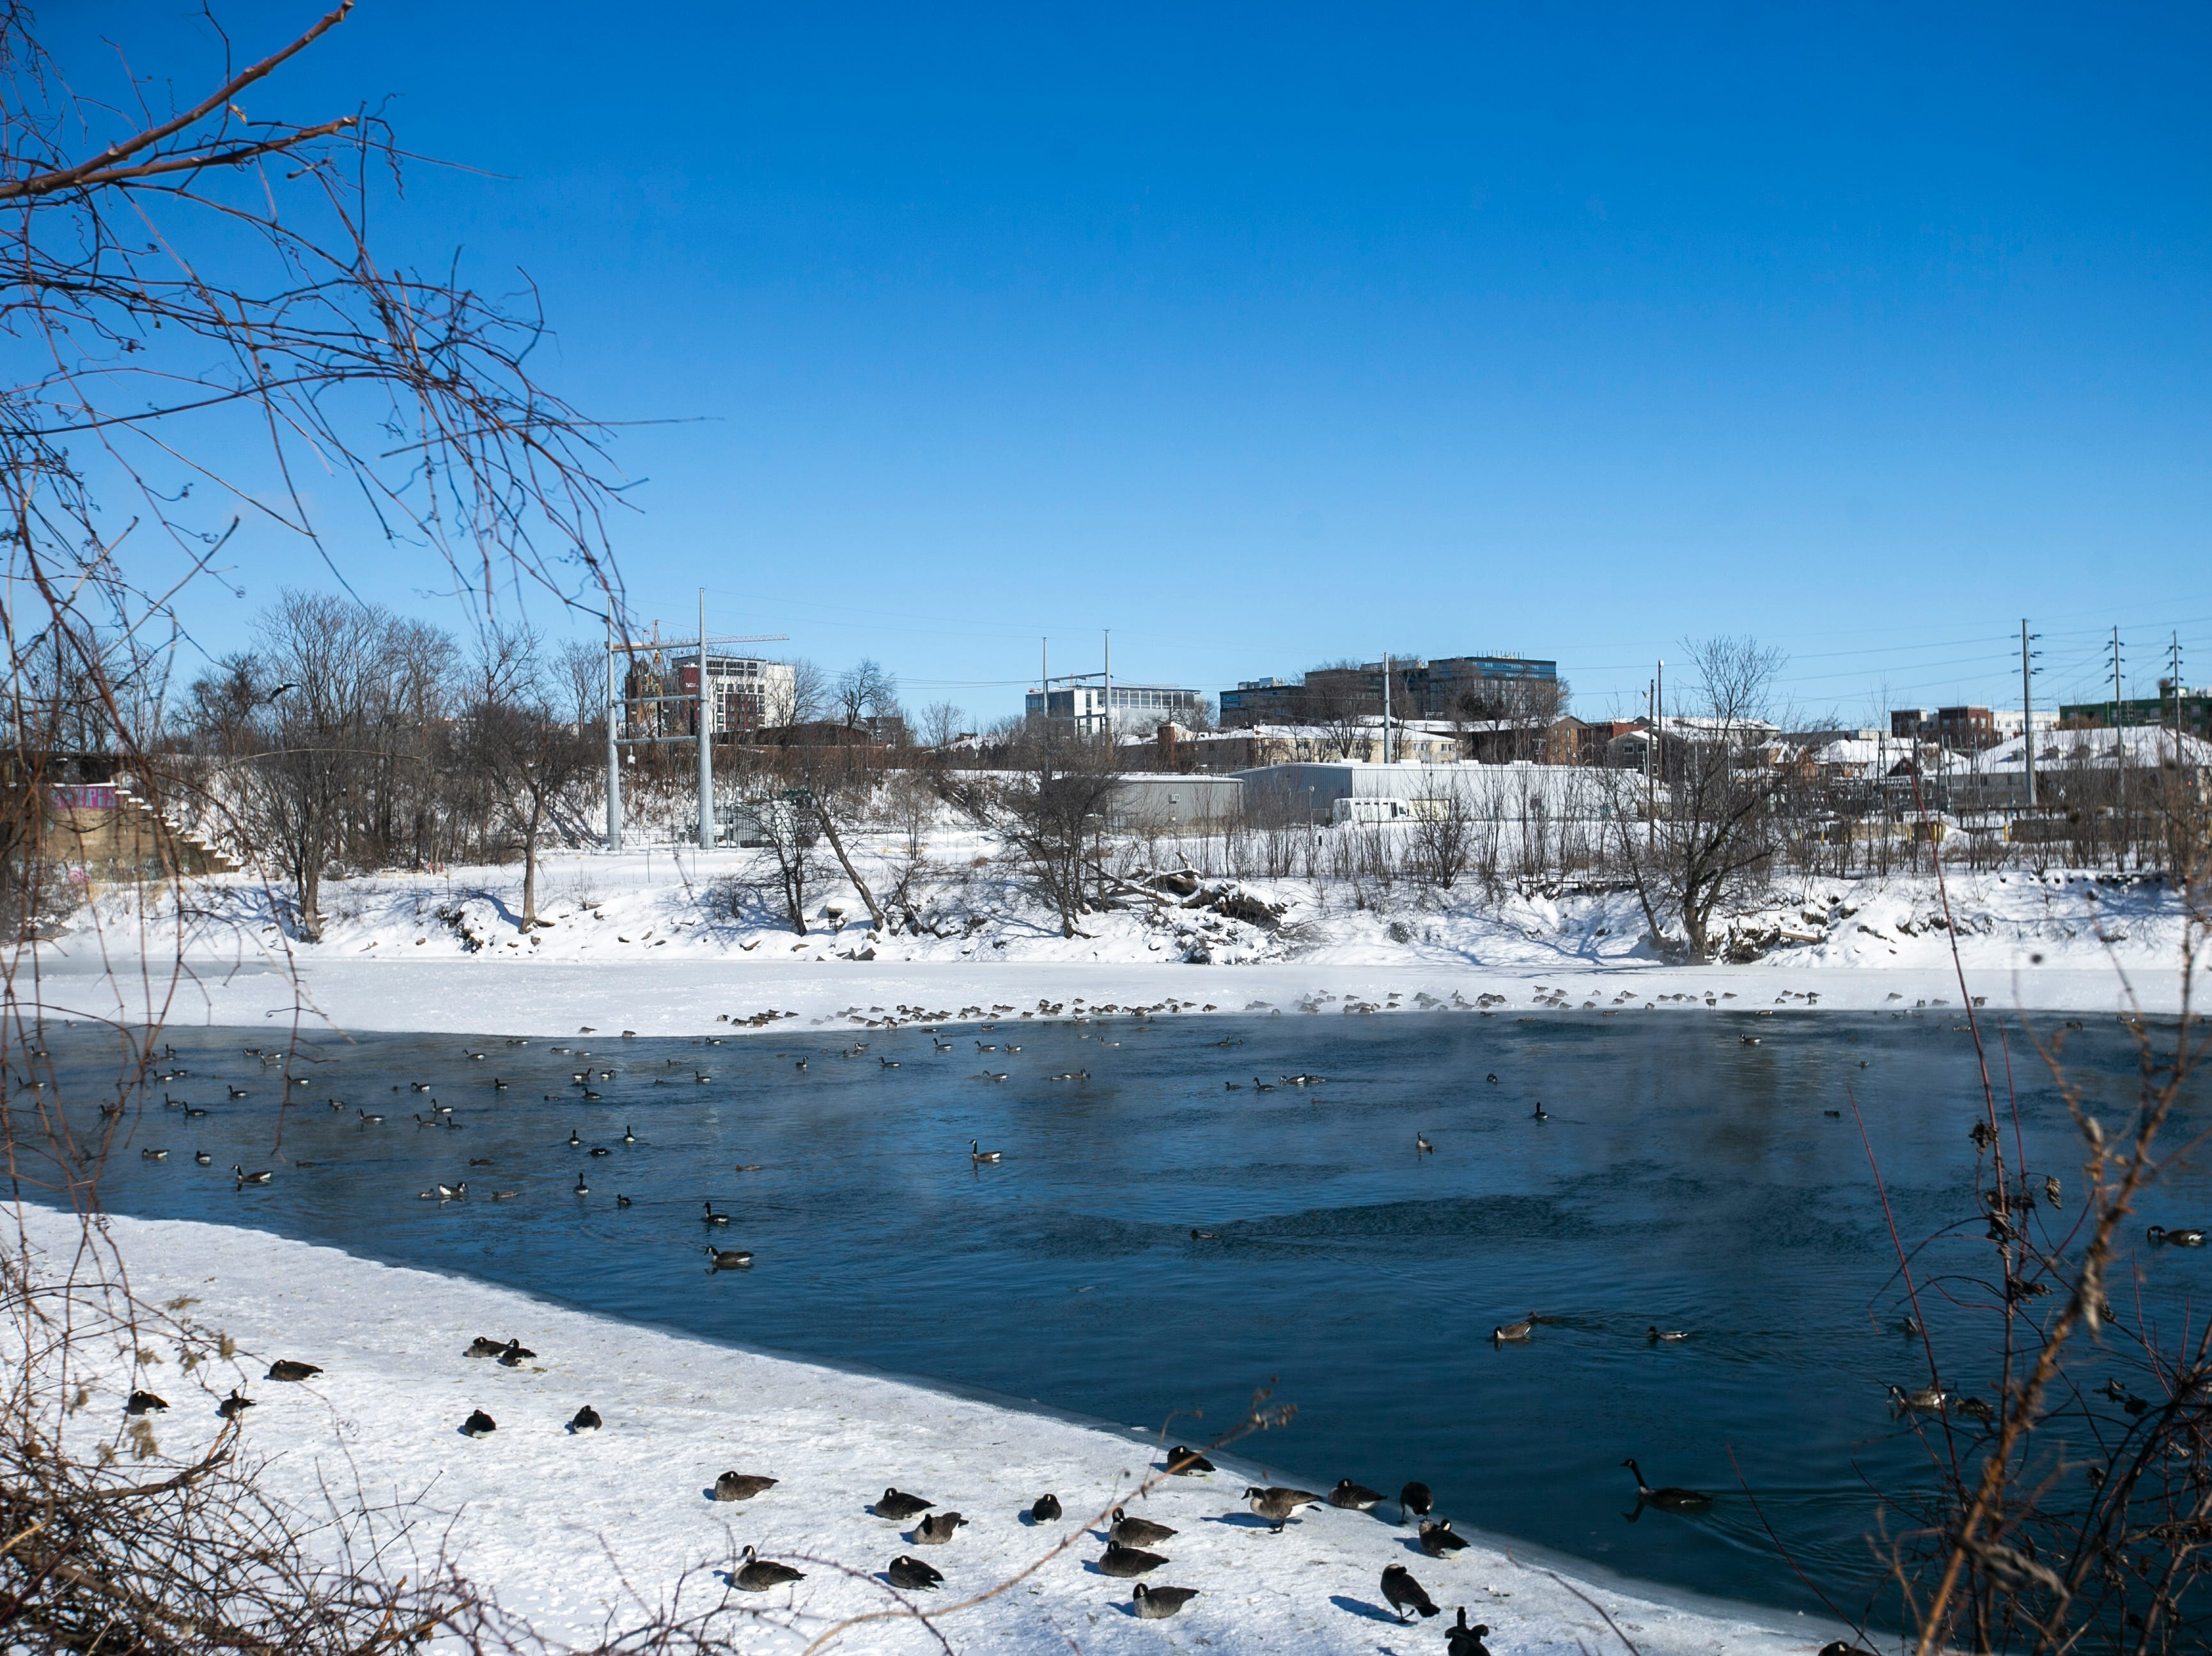 Ducks and geese rest on the riverbanks of the Iowa River on Wednesday, Jan. 30, 2019, in Iowa City, Iowa.